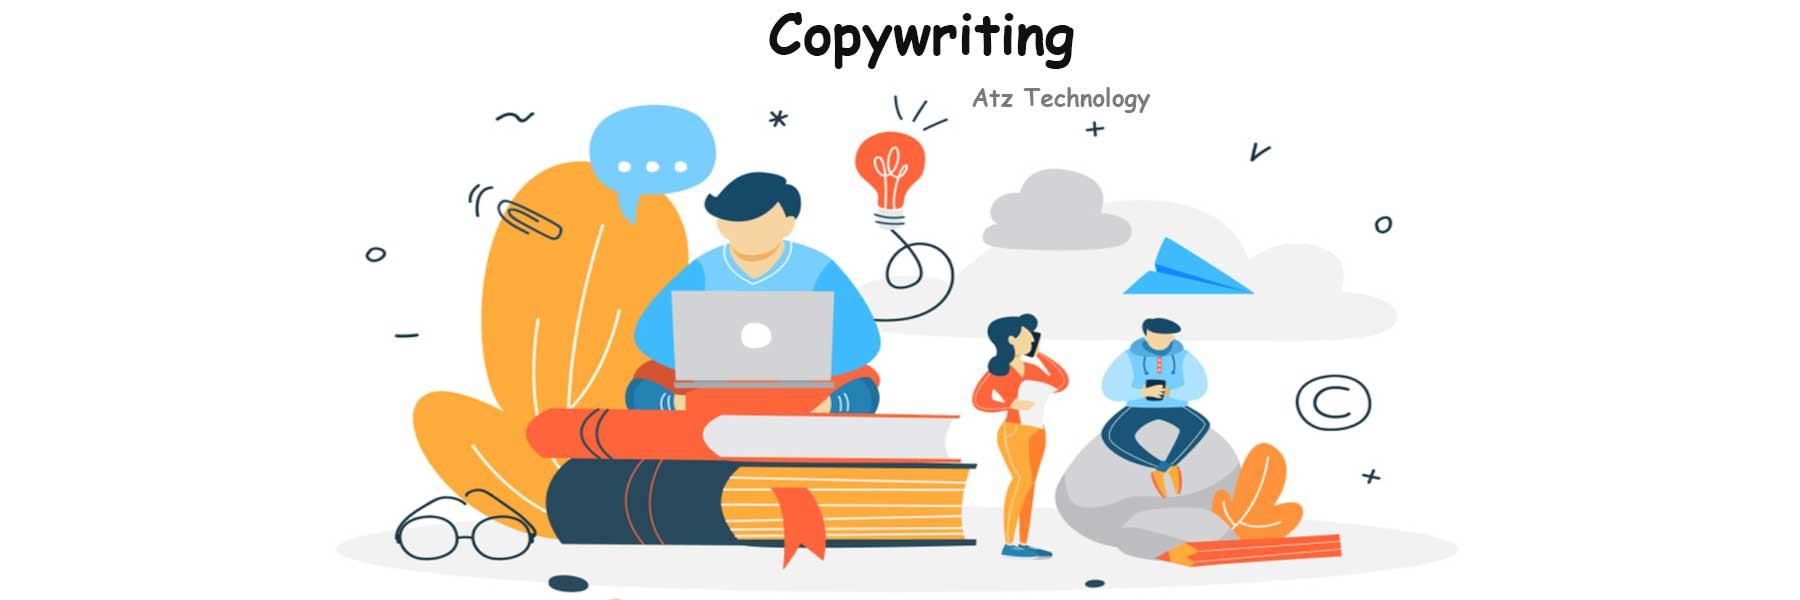 Copywriting: The Definition, History, and Basics of The Art